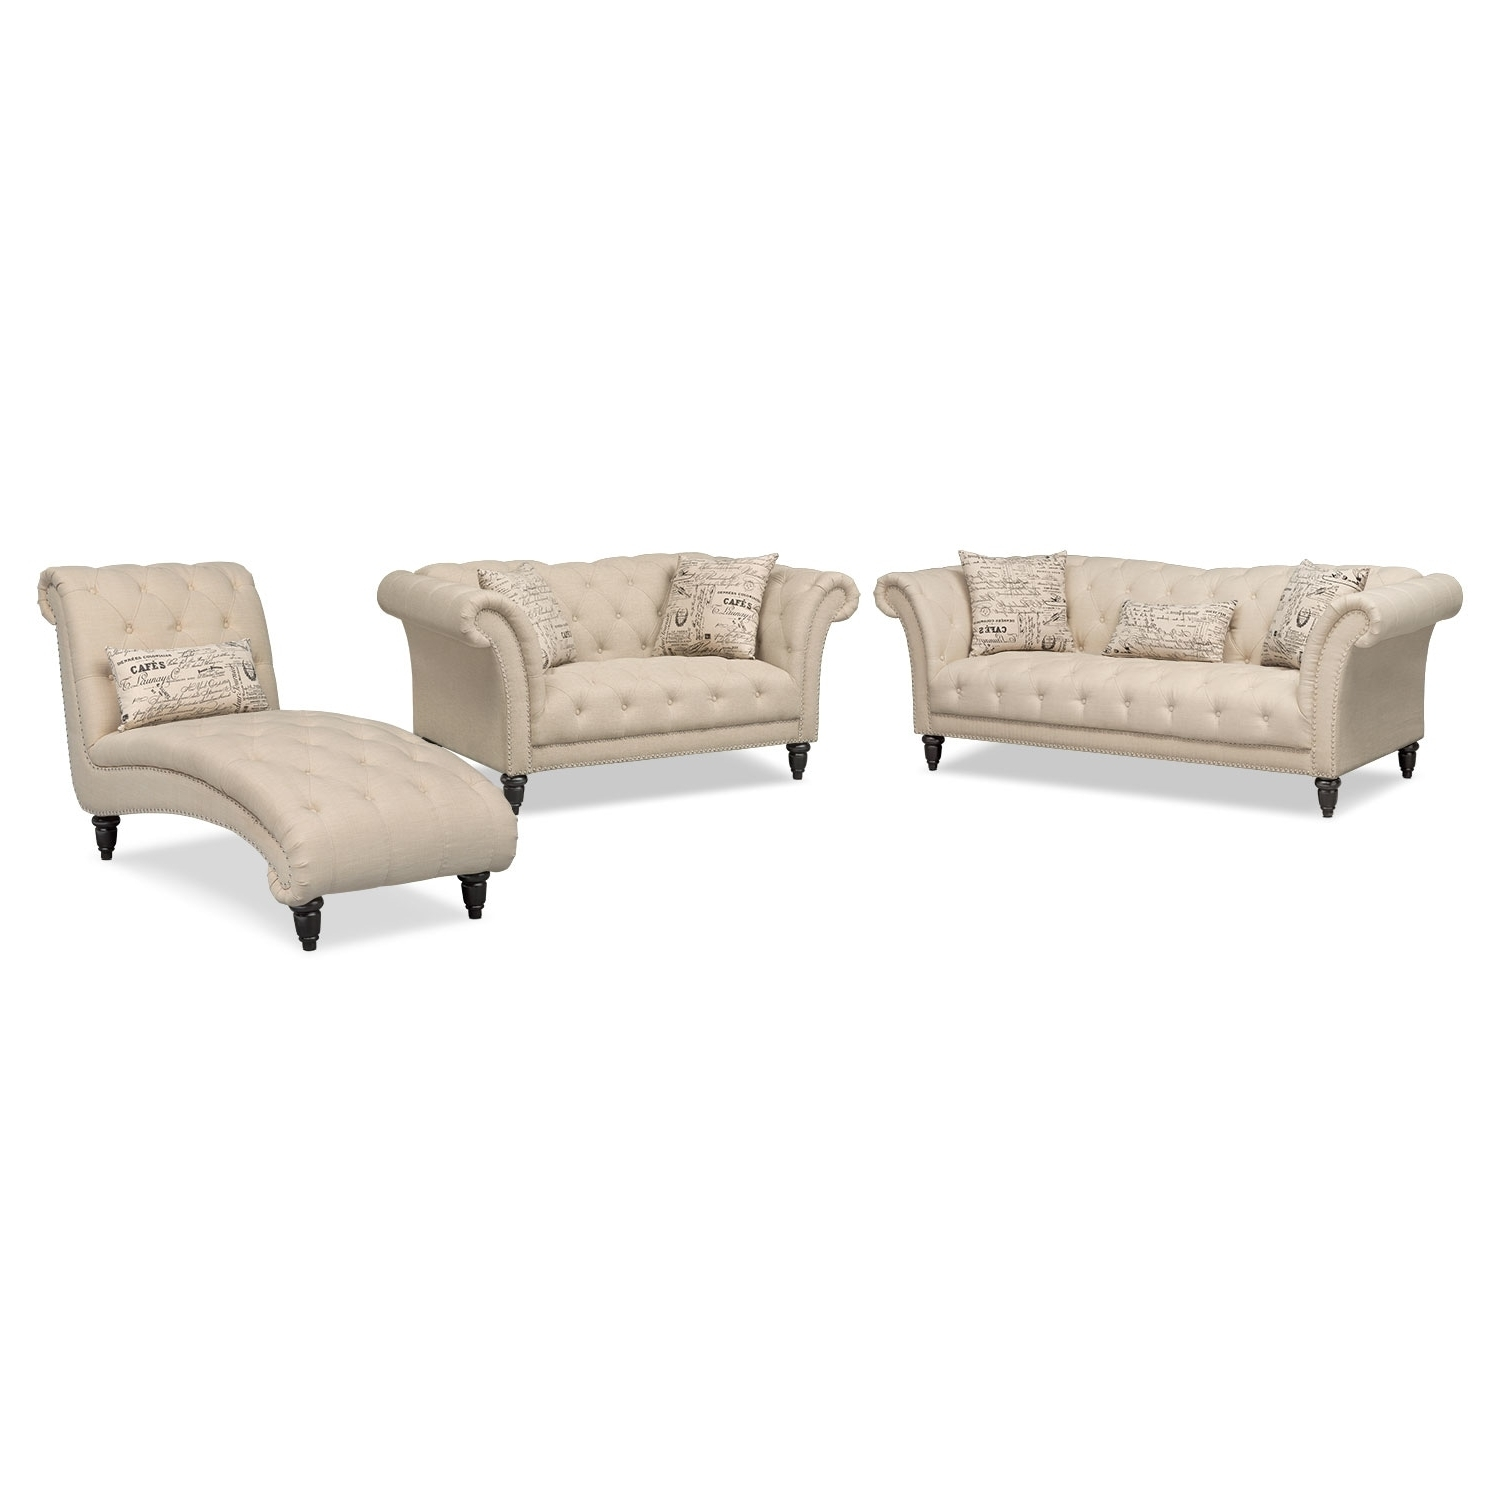 Marisol Sofa, Loveseat And Chaise Set – Beige (View 8 of 15)